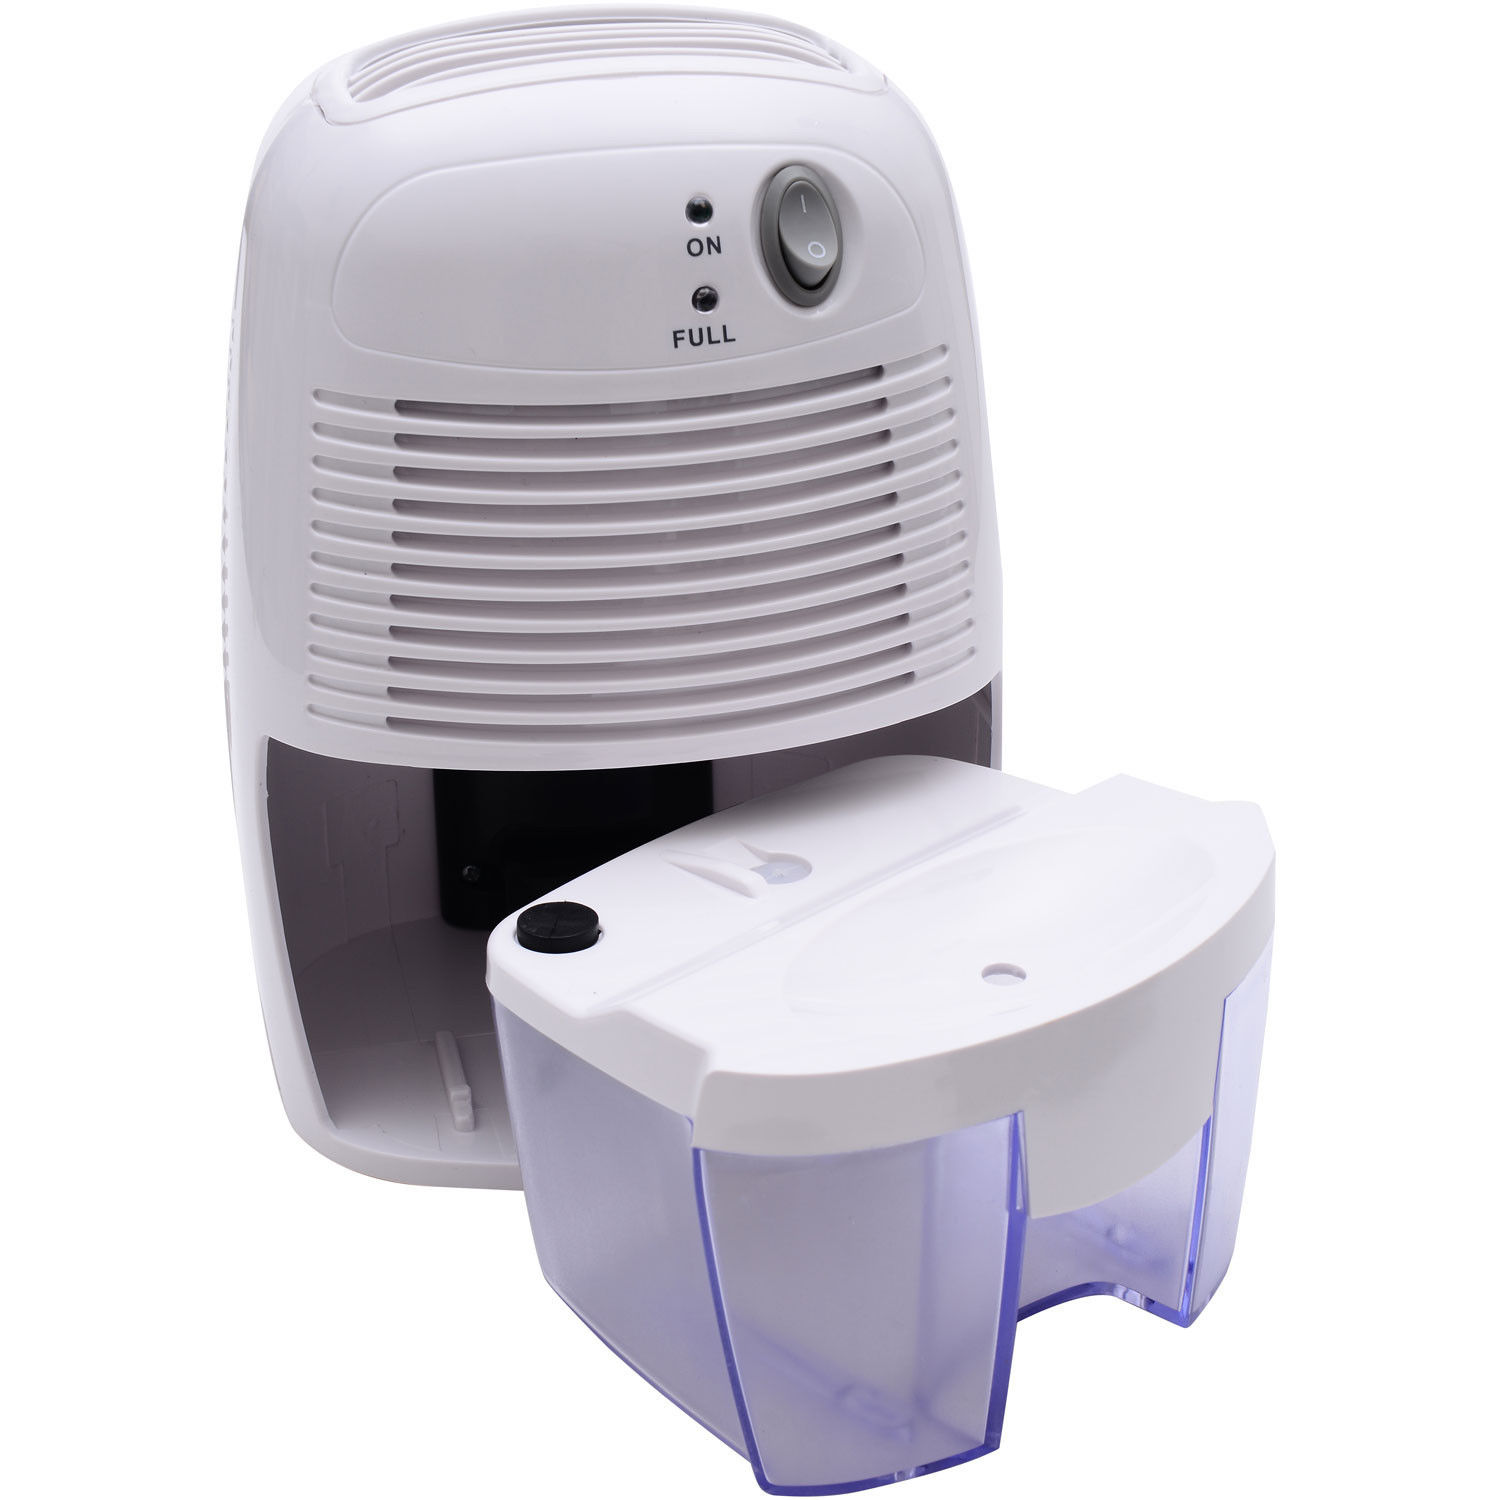 Small Dehumidifier For Bedroom